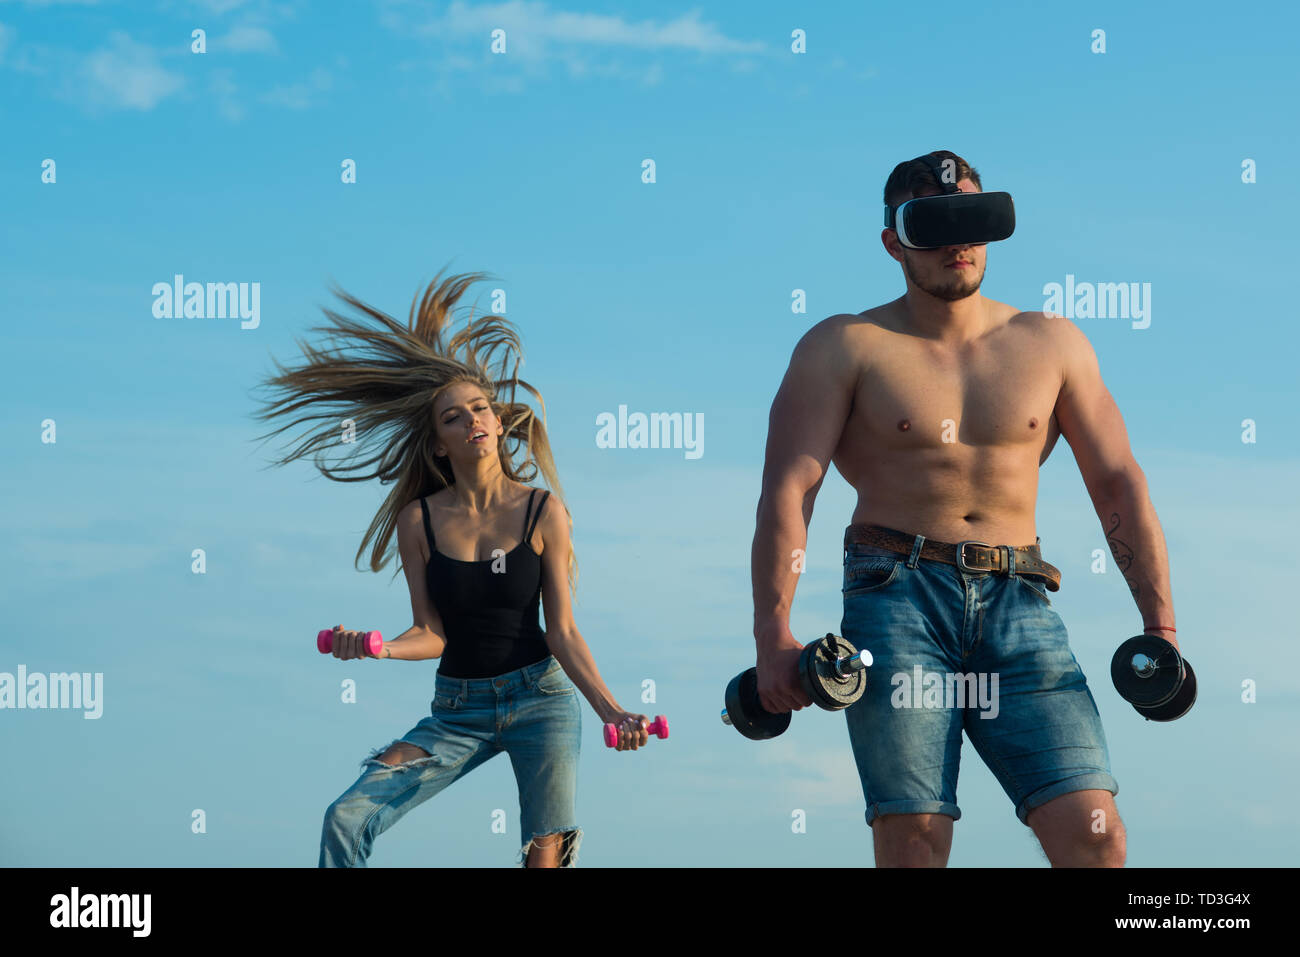 Innovation in sport. Man bodybuilder in vr headset use innovation for training. Innovation for getting stronger. Build muscle with innovation device.  - Stock Image